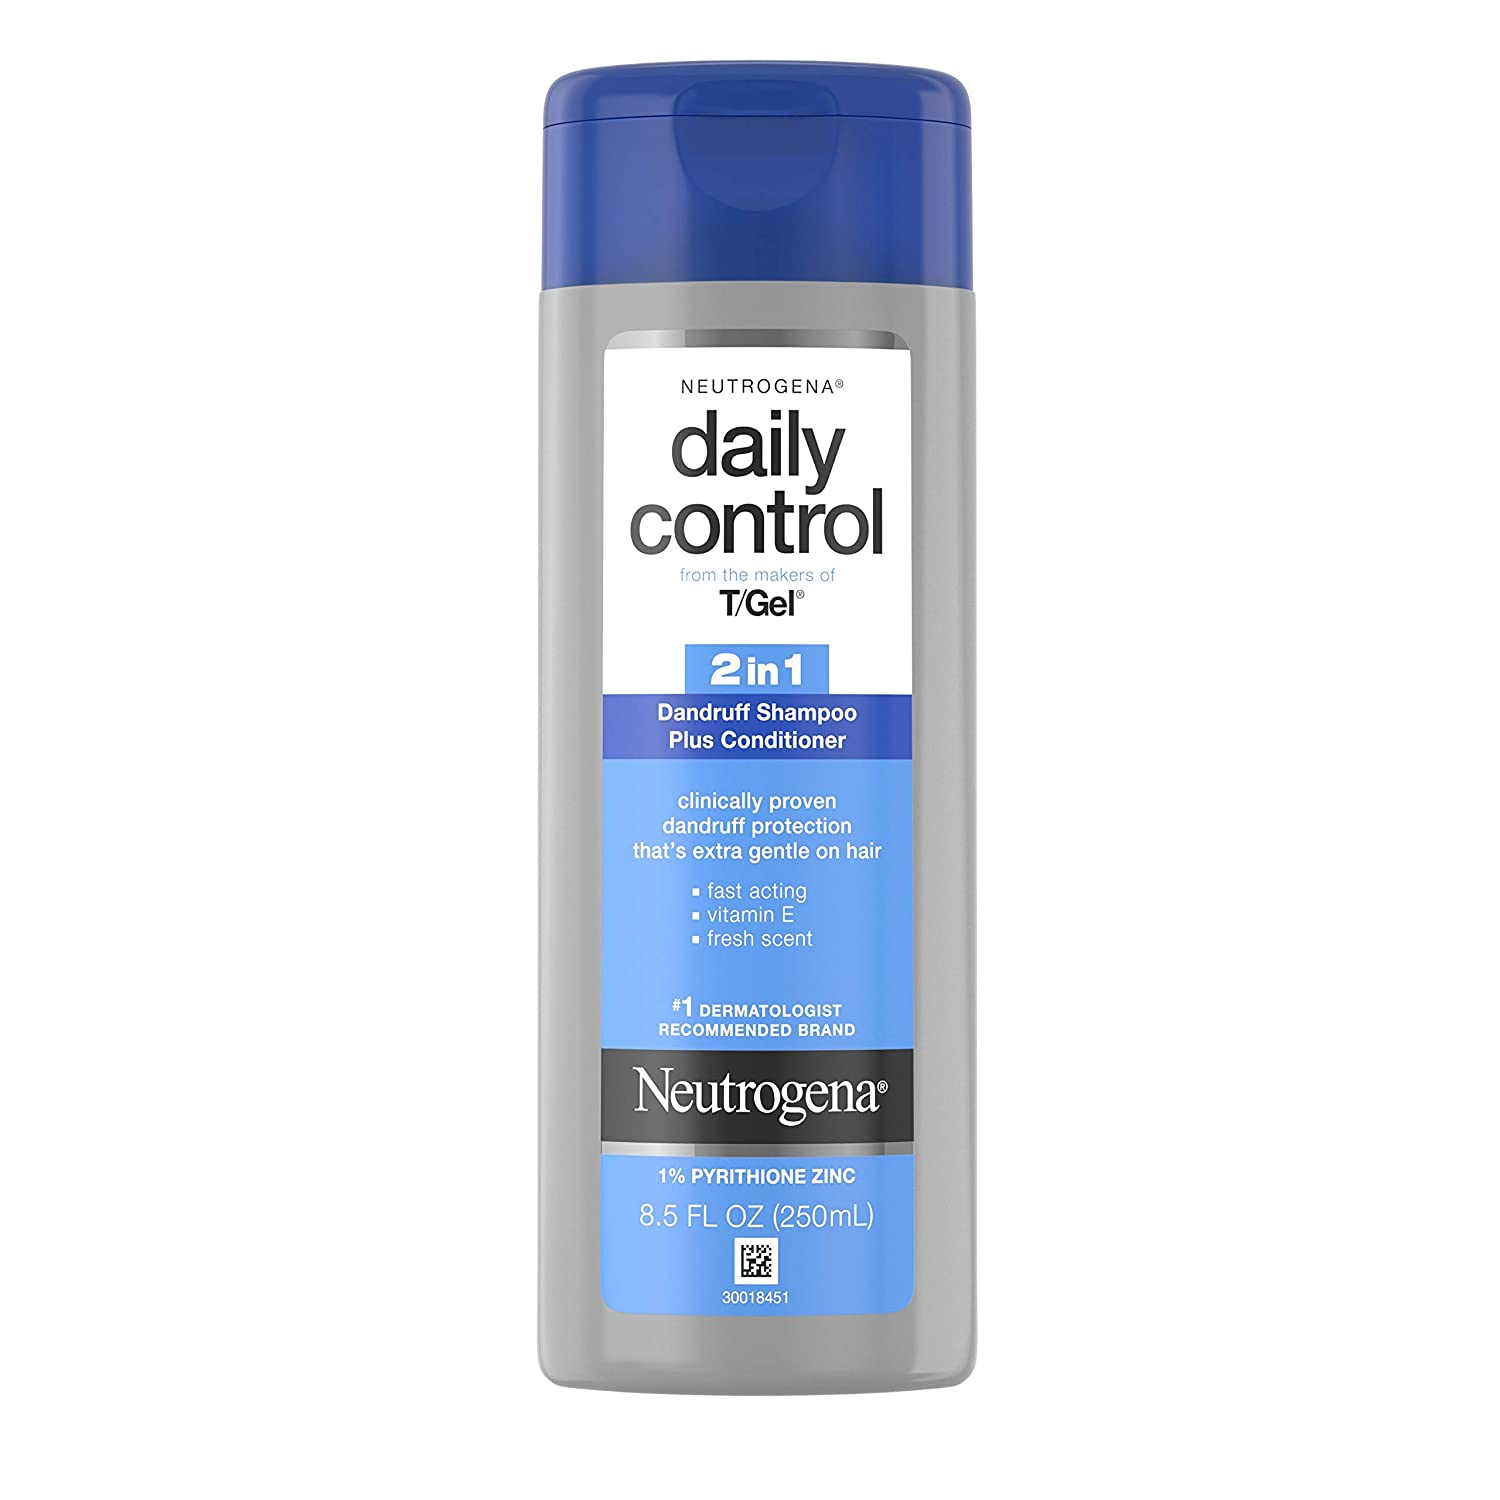 Neutrogena T/Gel Daily Control Anti-Dandruff Shampoo Plus Conditioner